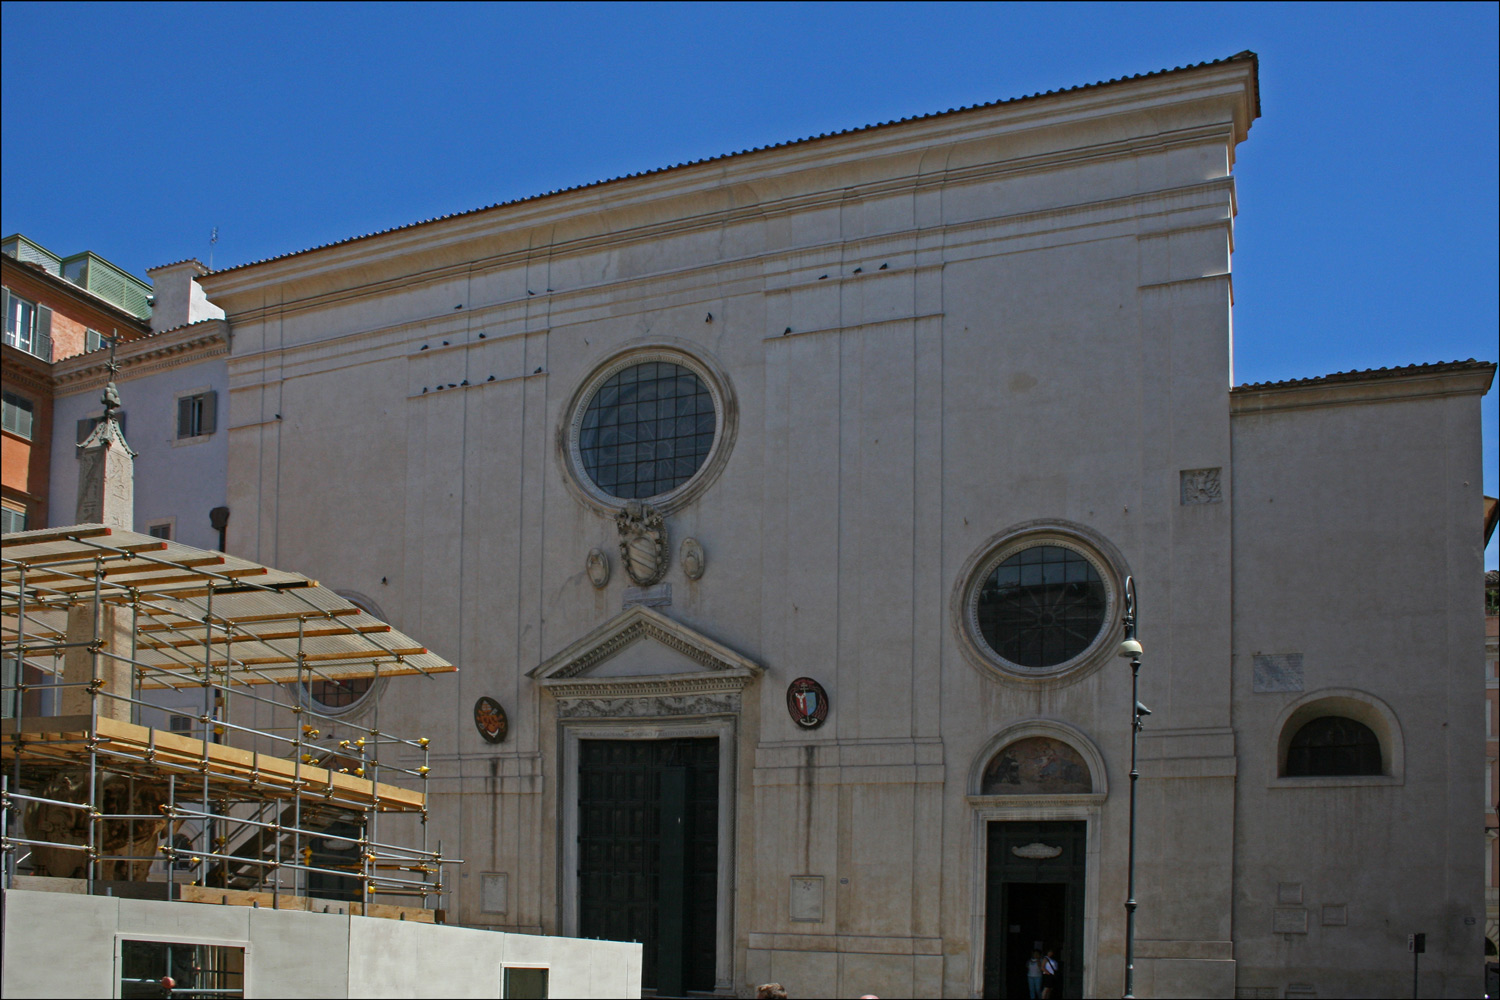 The Basilica of Saint Mary Above Minerva